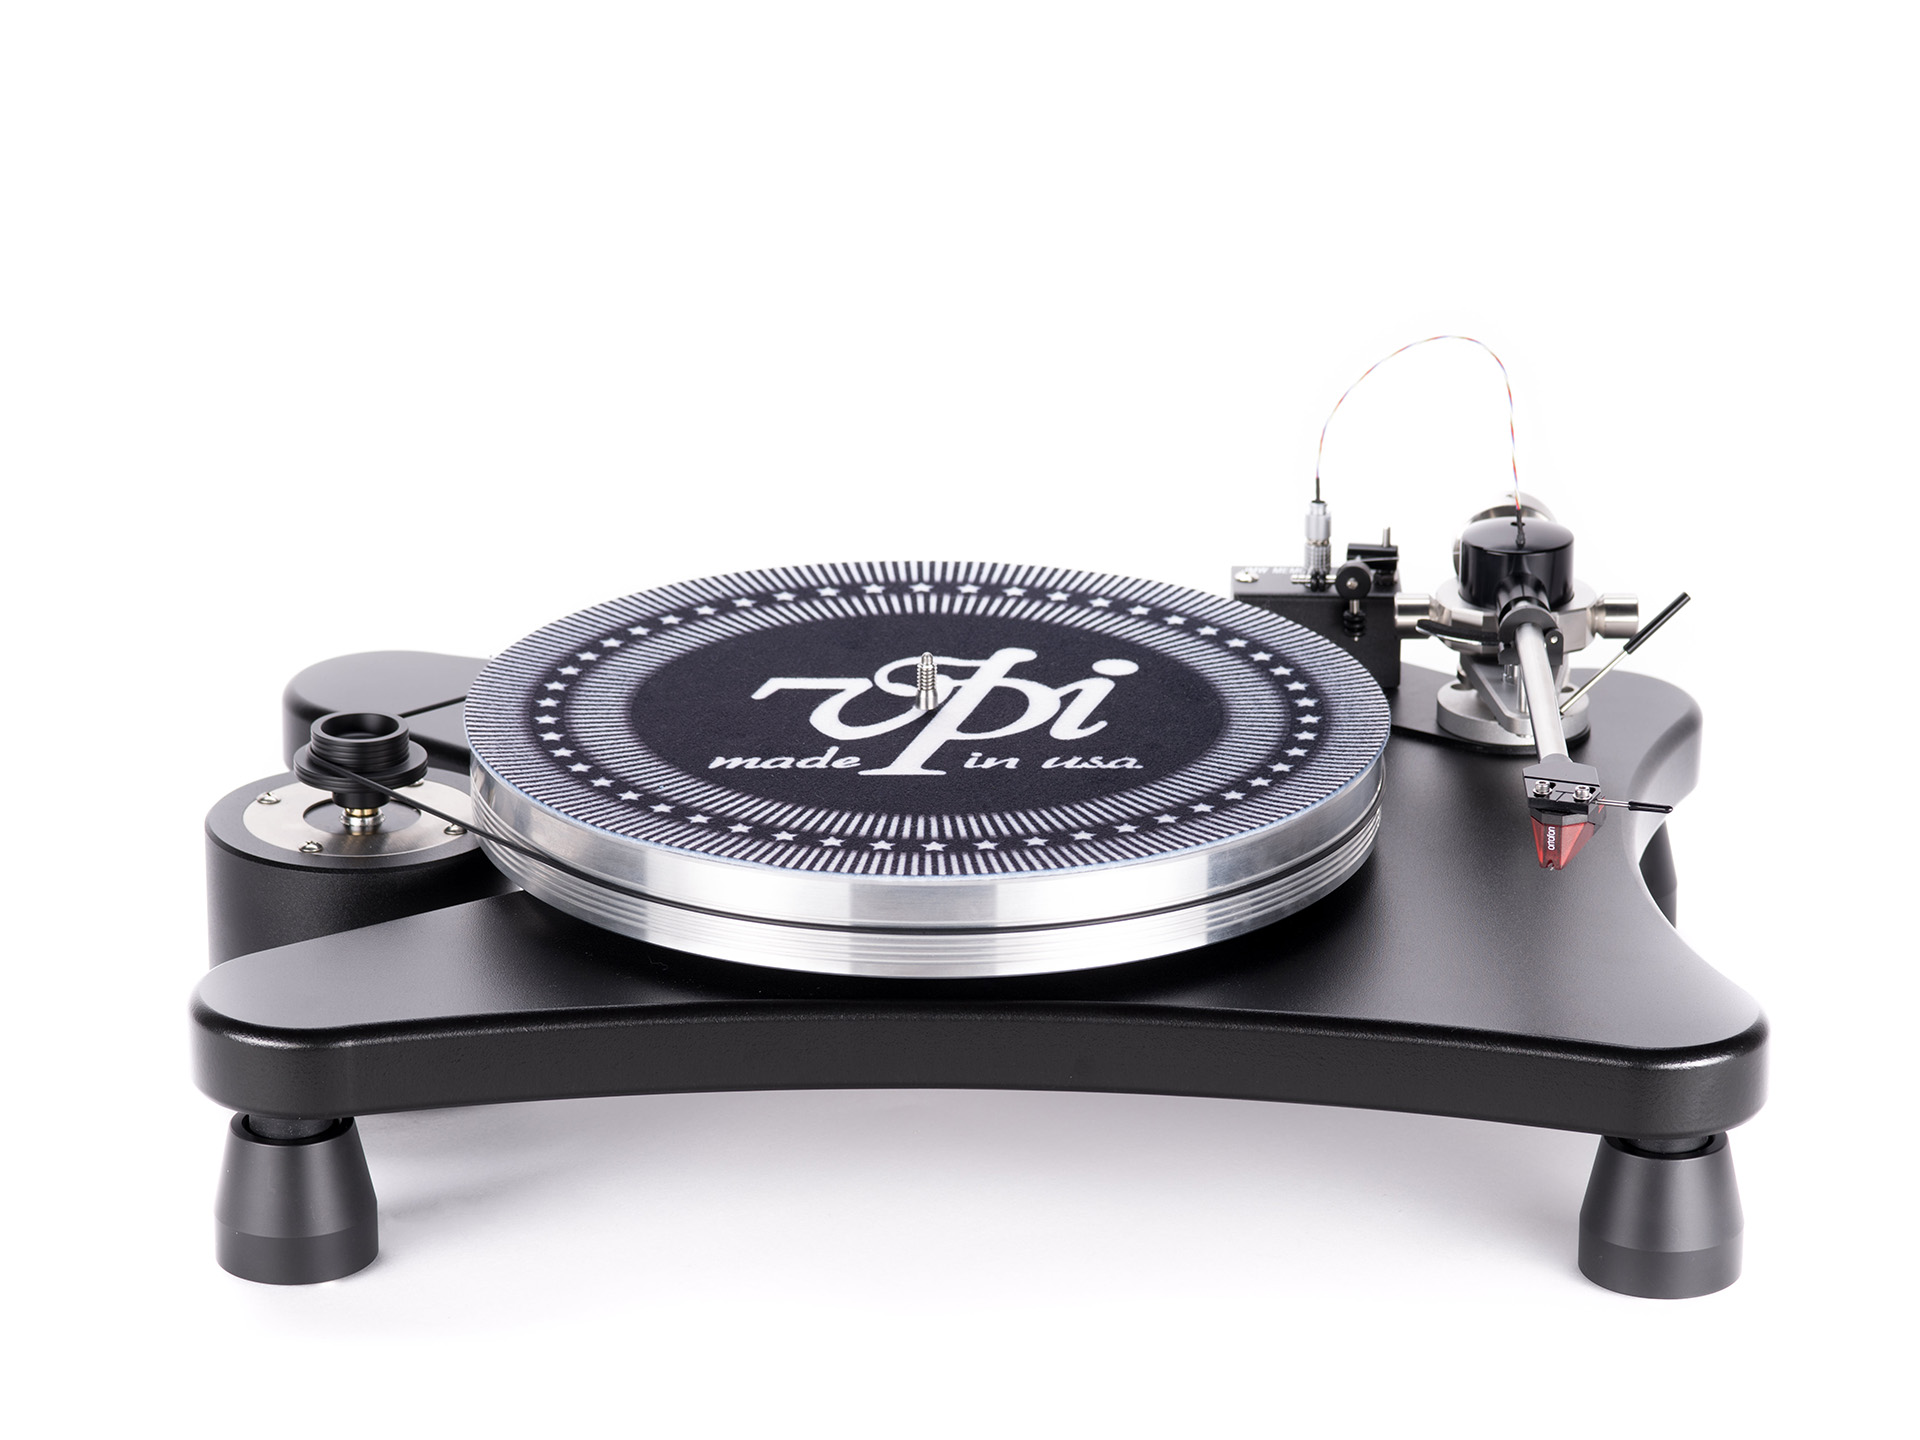 VPI Scout - Stereophile - 2017 Joint Analog Component of the Year